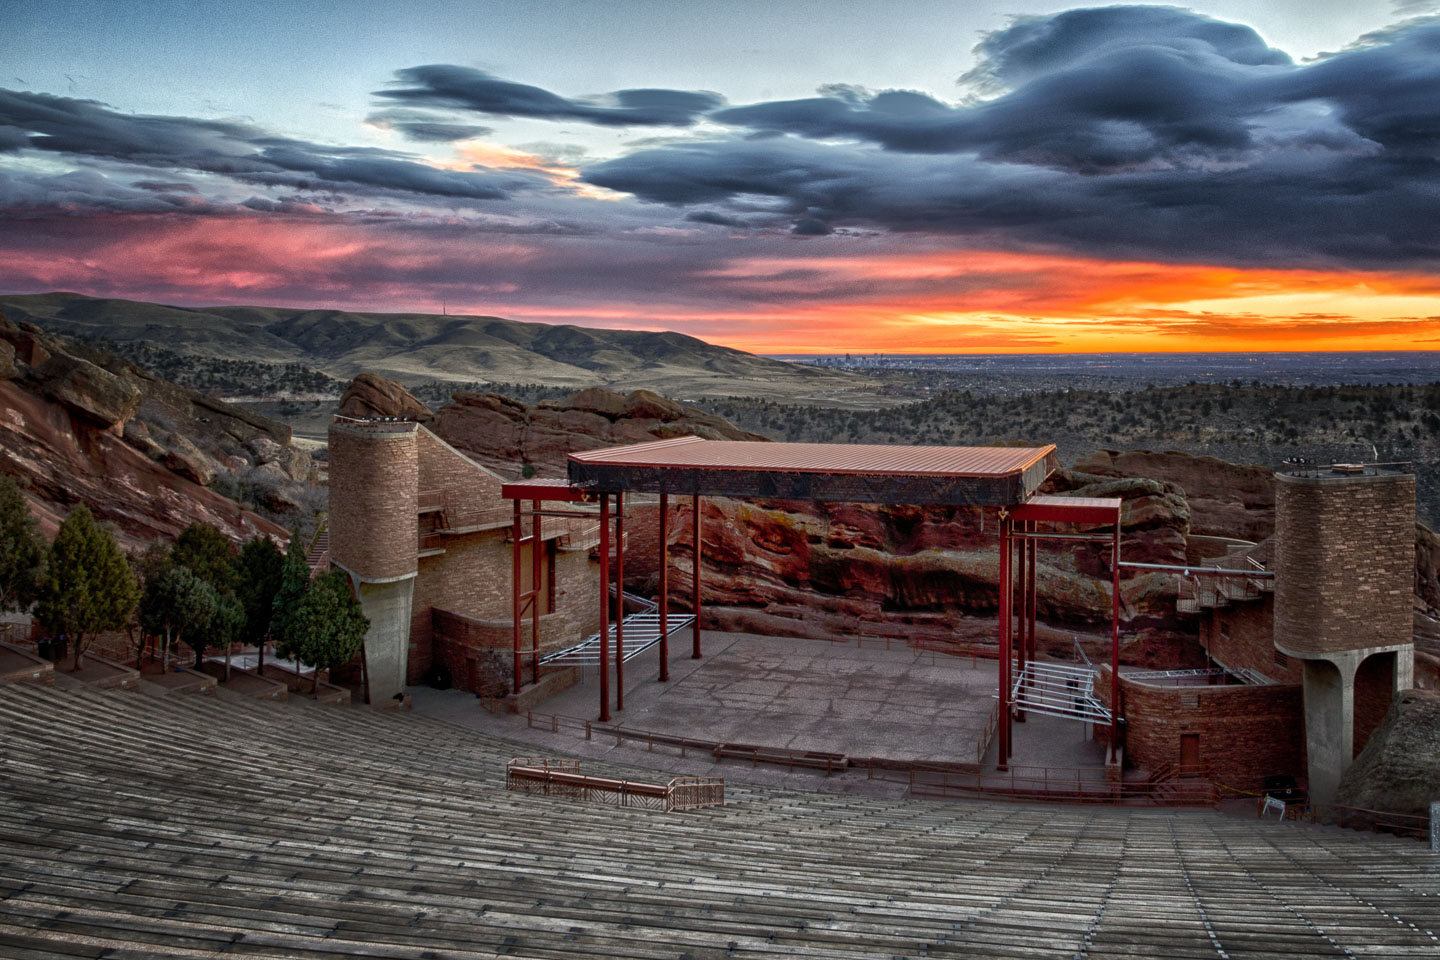 red-rocks-amphitheater-110.jpg